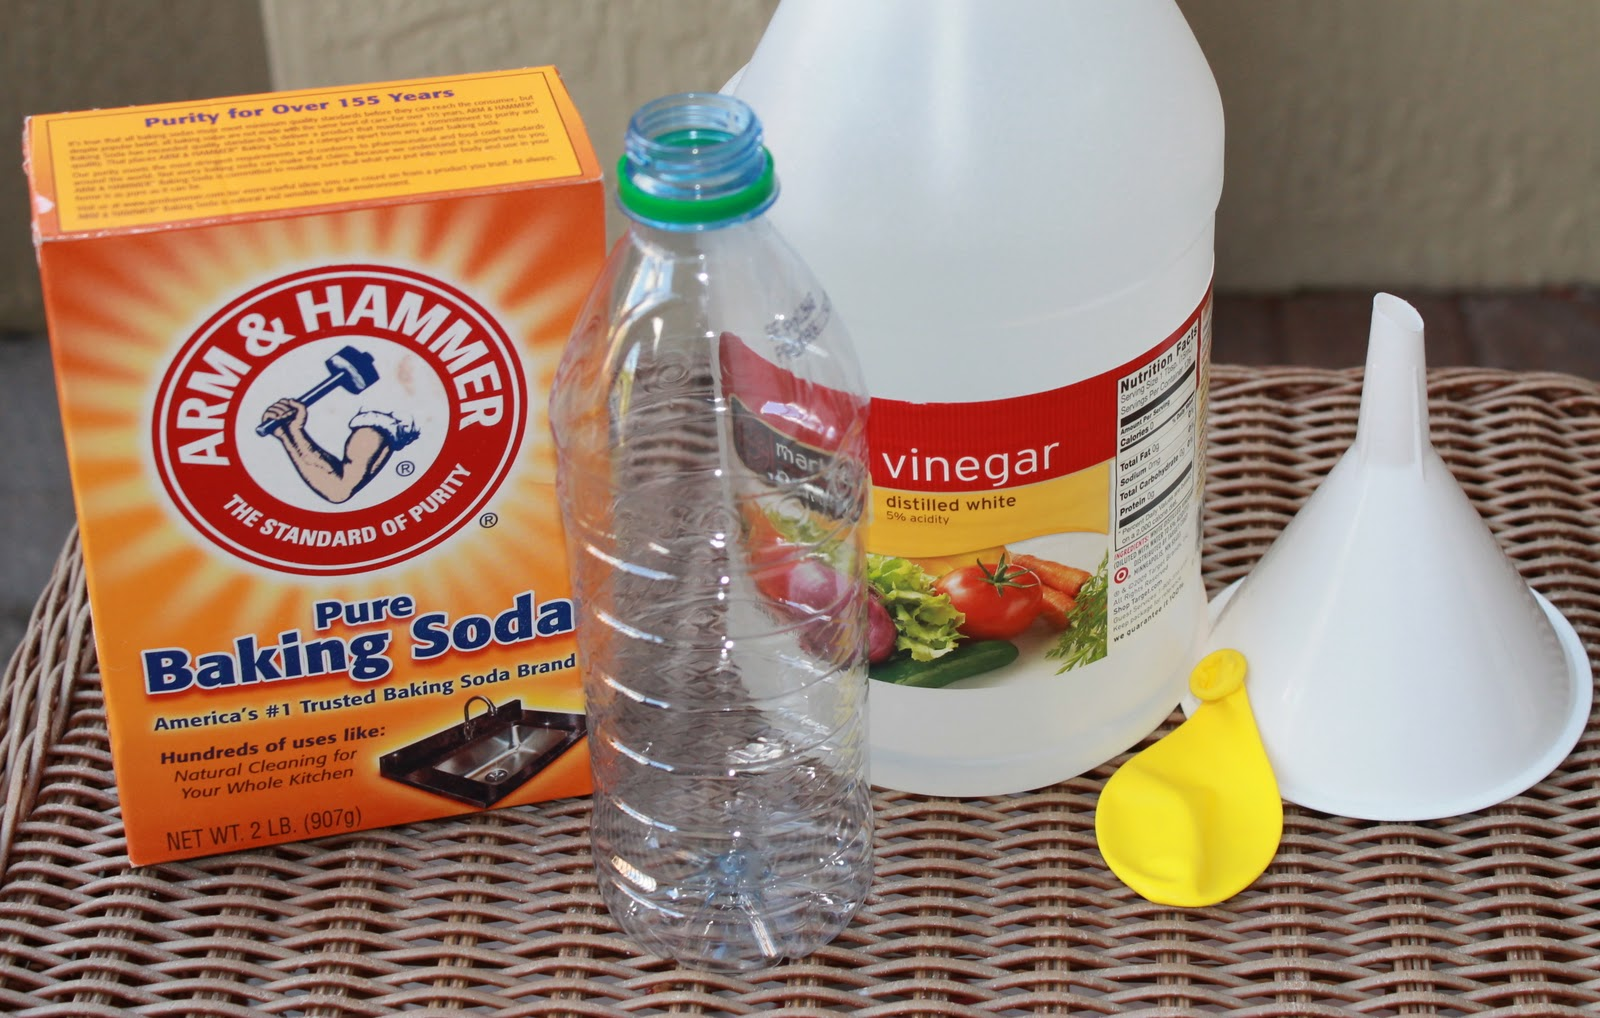 How To Inflate A Balloon With Vinegar And Baking Soda